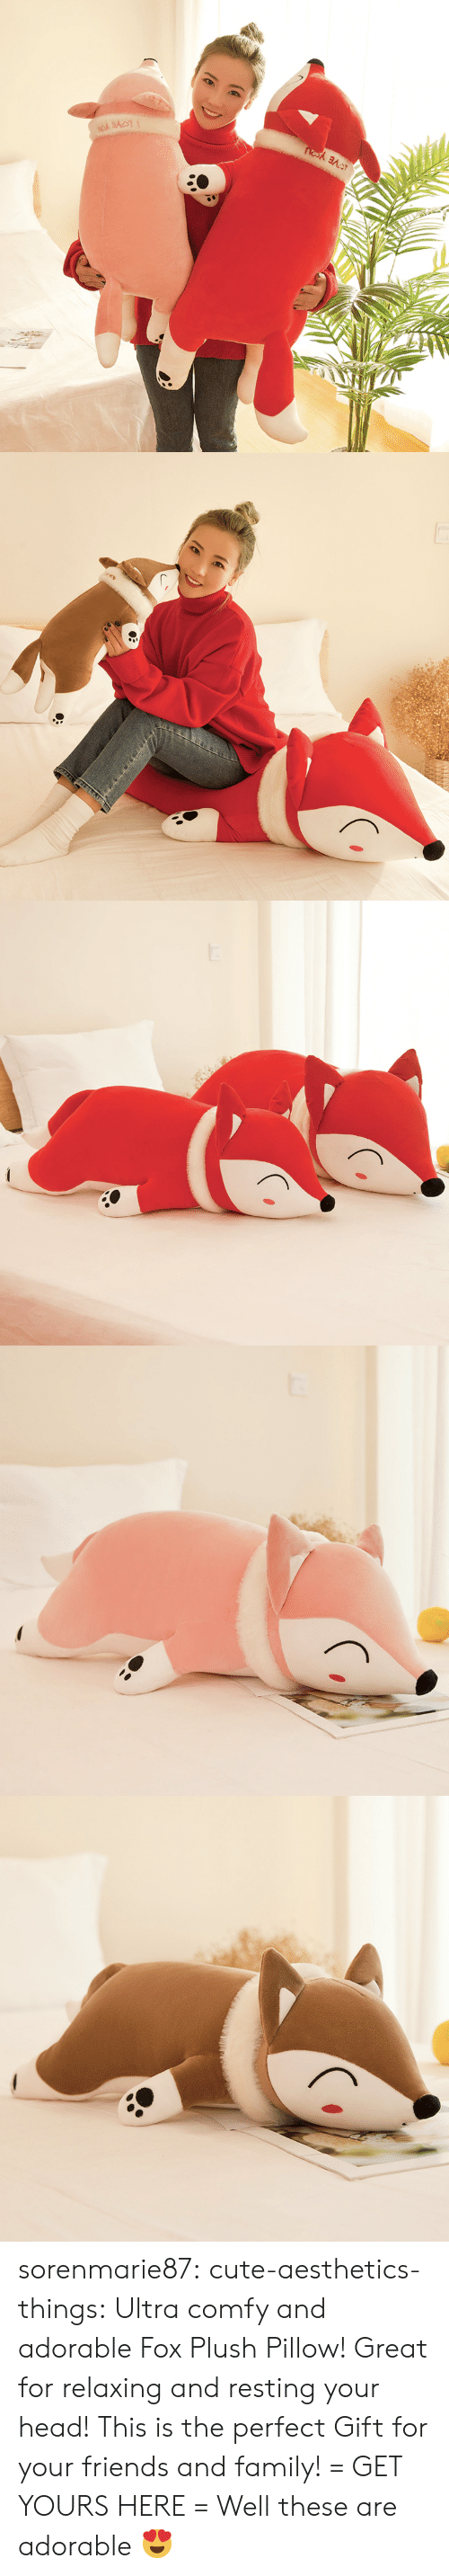 comfy: sorenmarie87: cute-aesthetics-things:  Ultra comfy and adorable Fox Plush Pillow! Great for relaxing and resting your head! This is the perfect Gift for your friends and family! = GET YOURS HERE =   Well these are adorable 😍